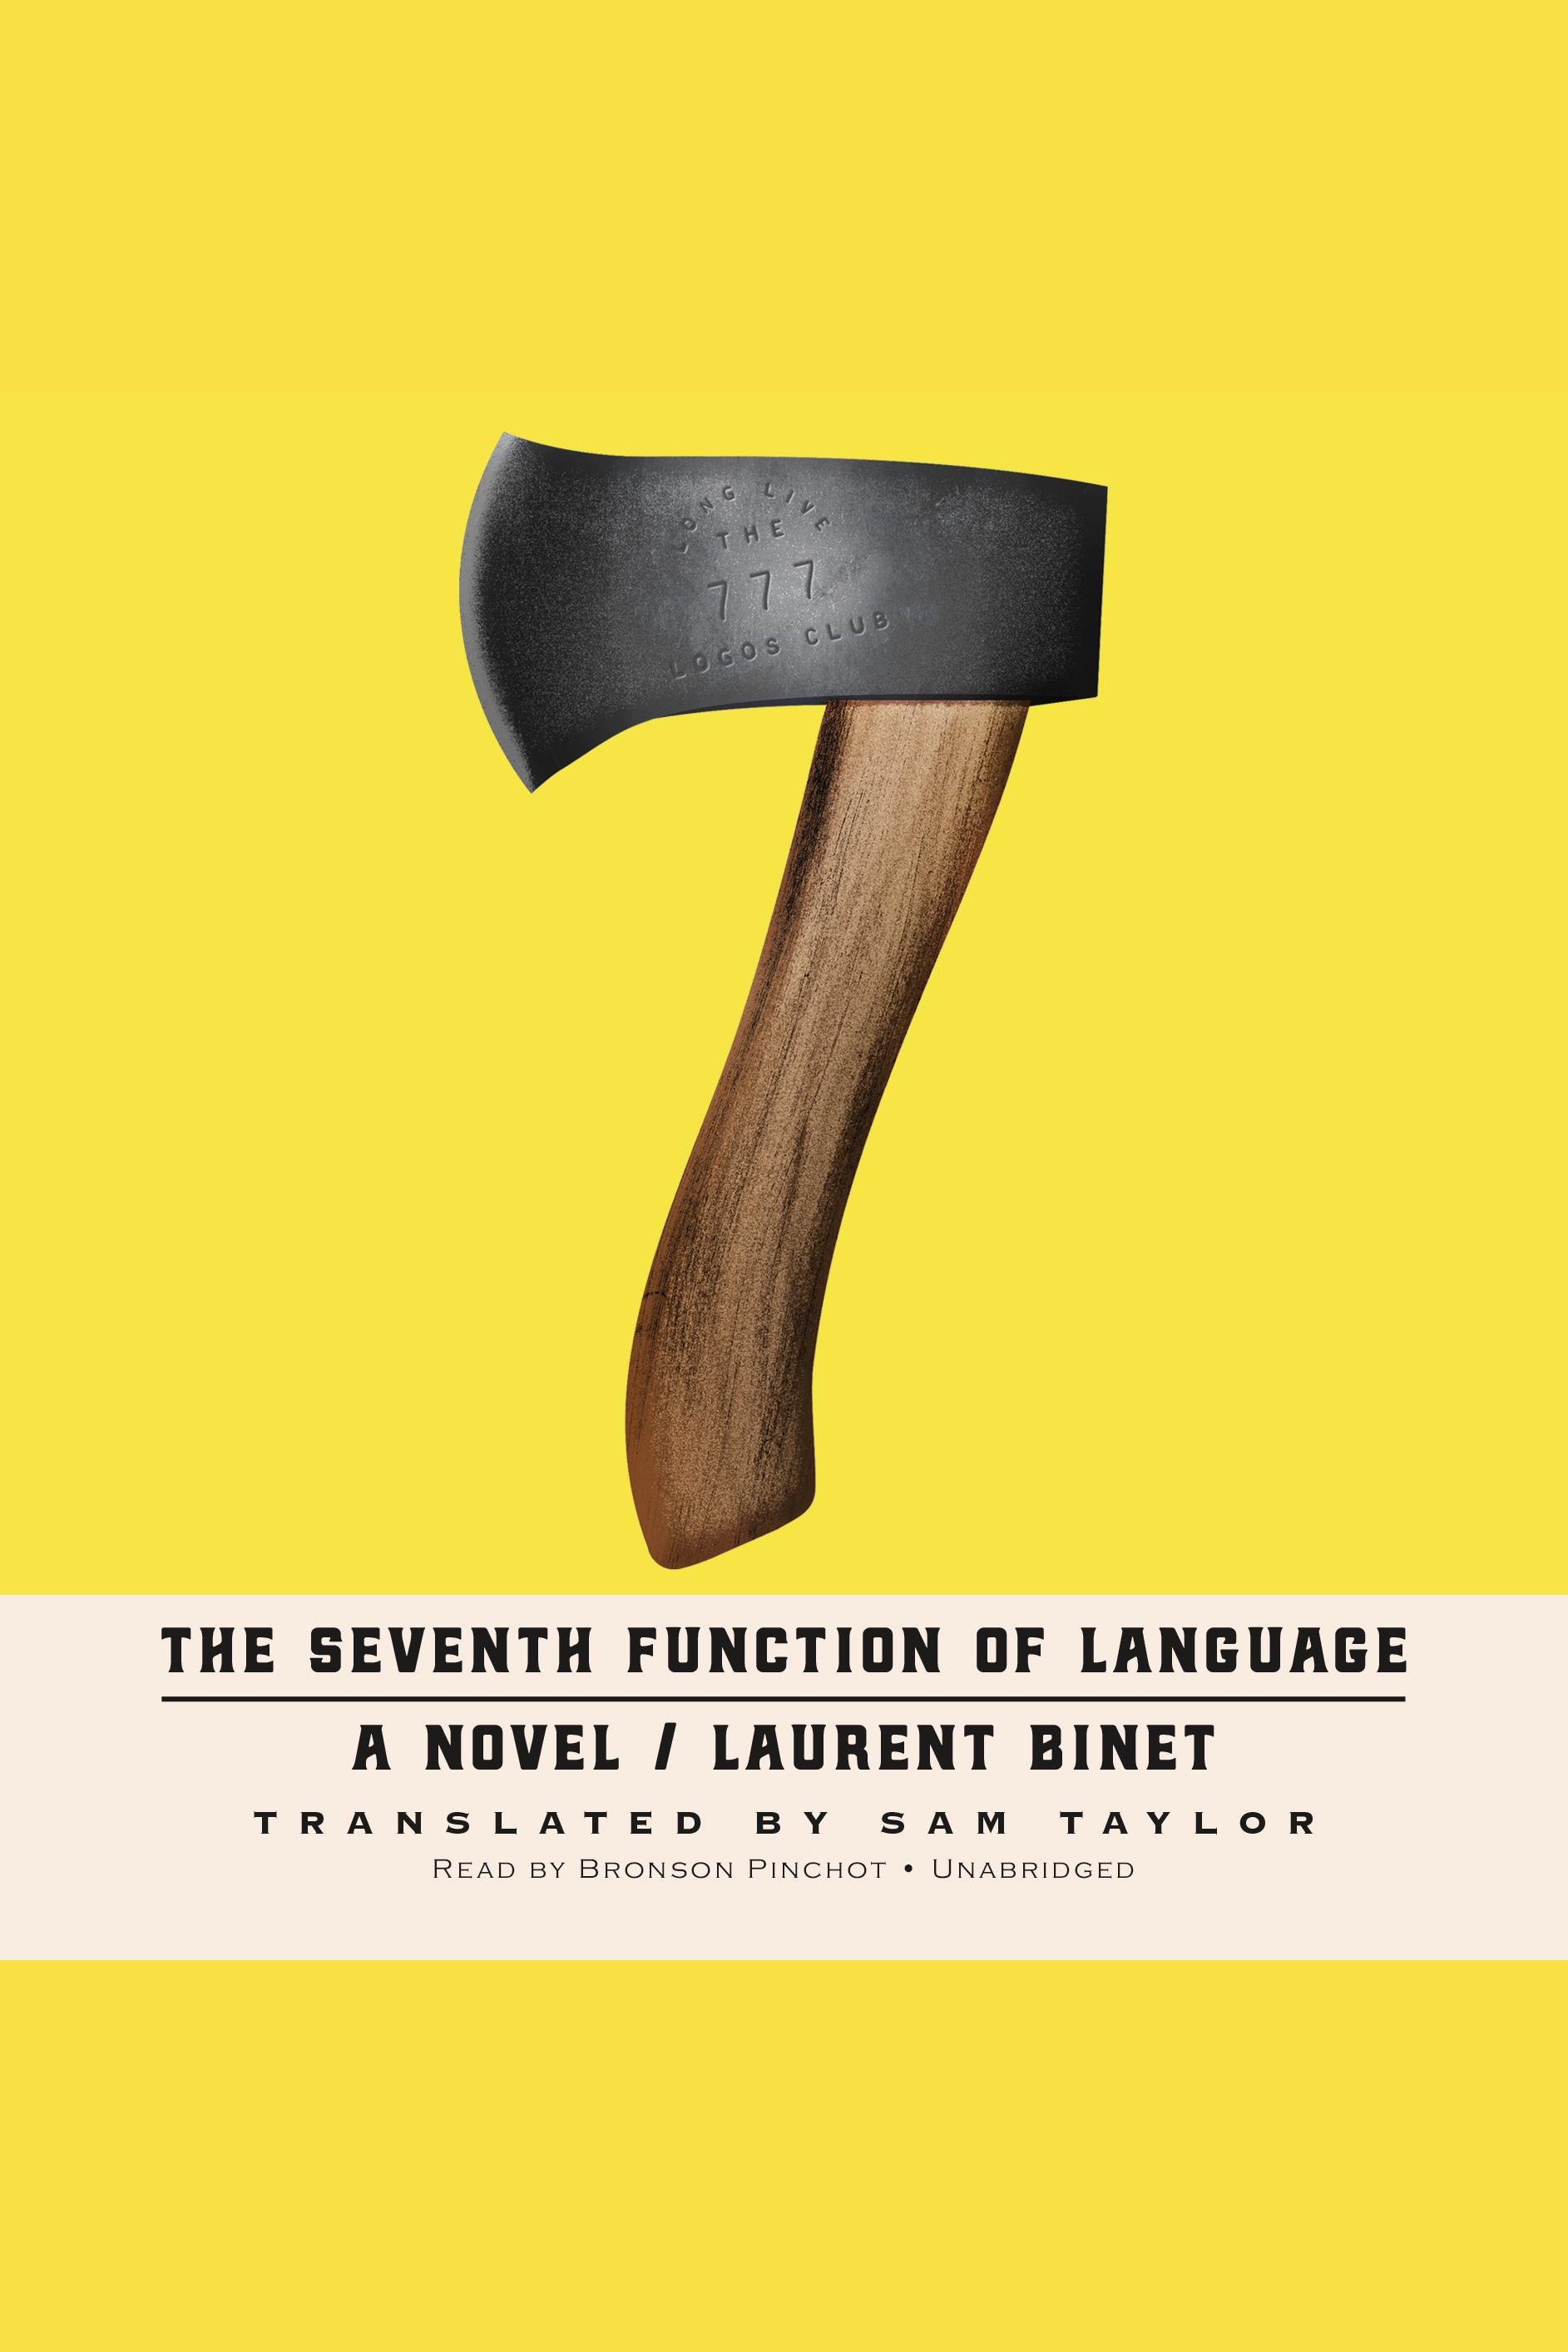 The seventh function of language cover image